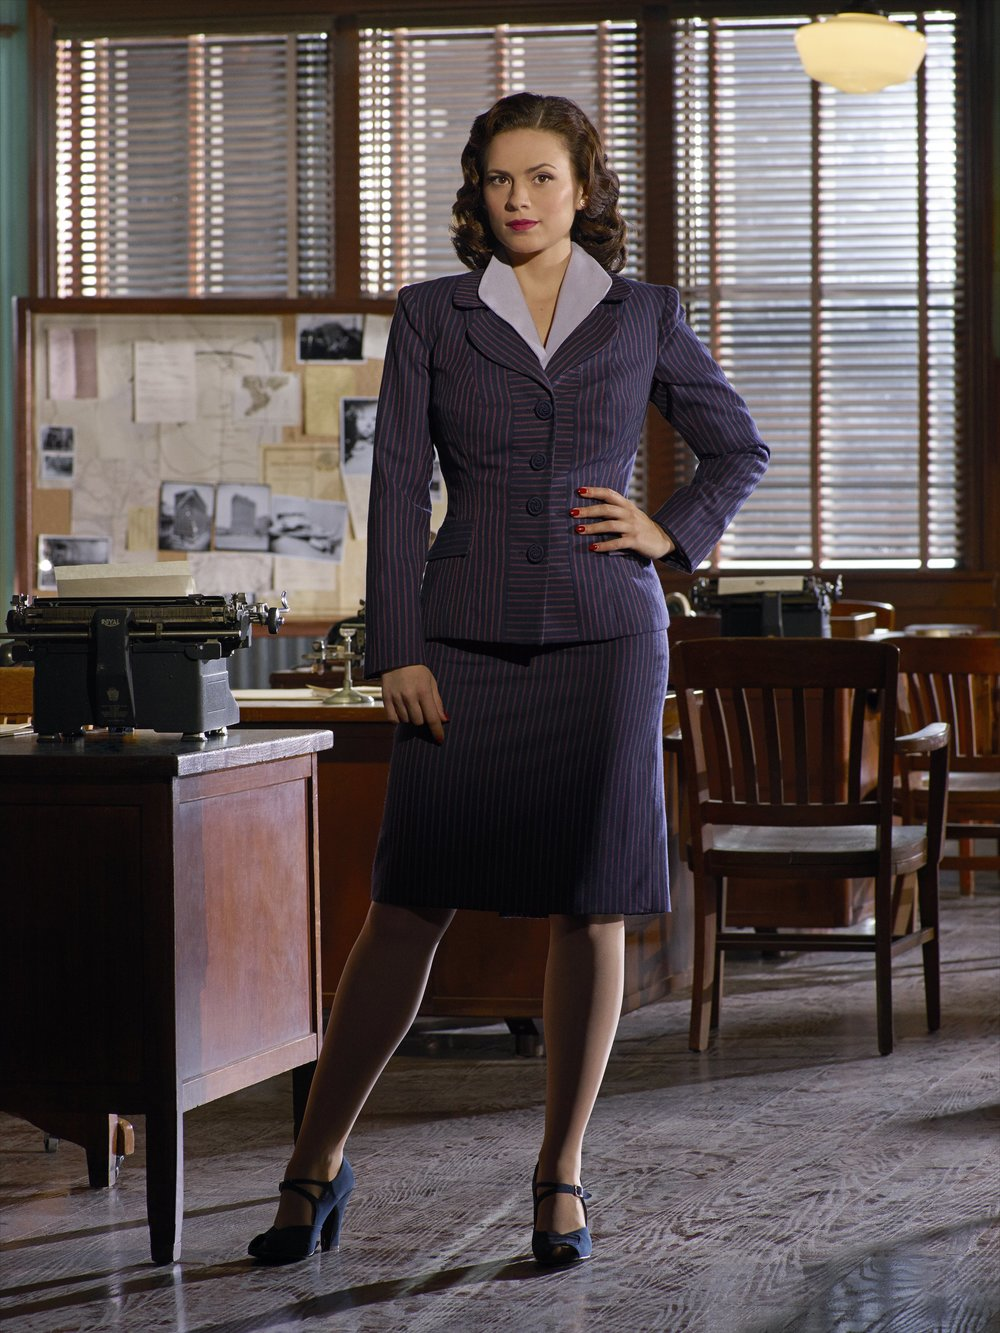 Agent Carter ( Hayley Atwell)